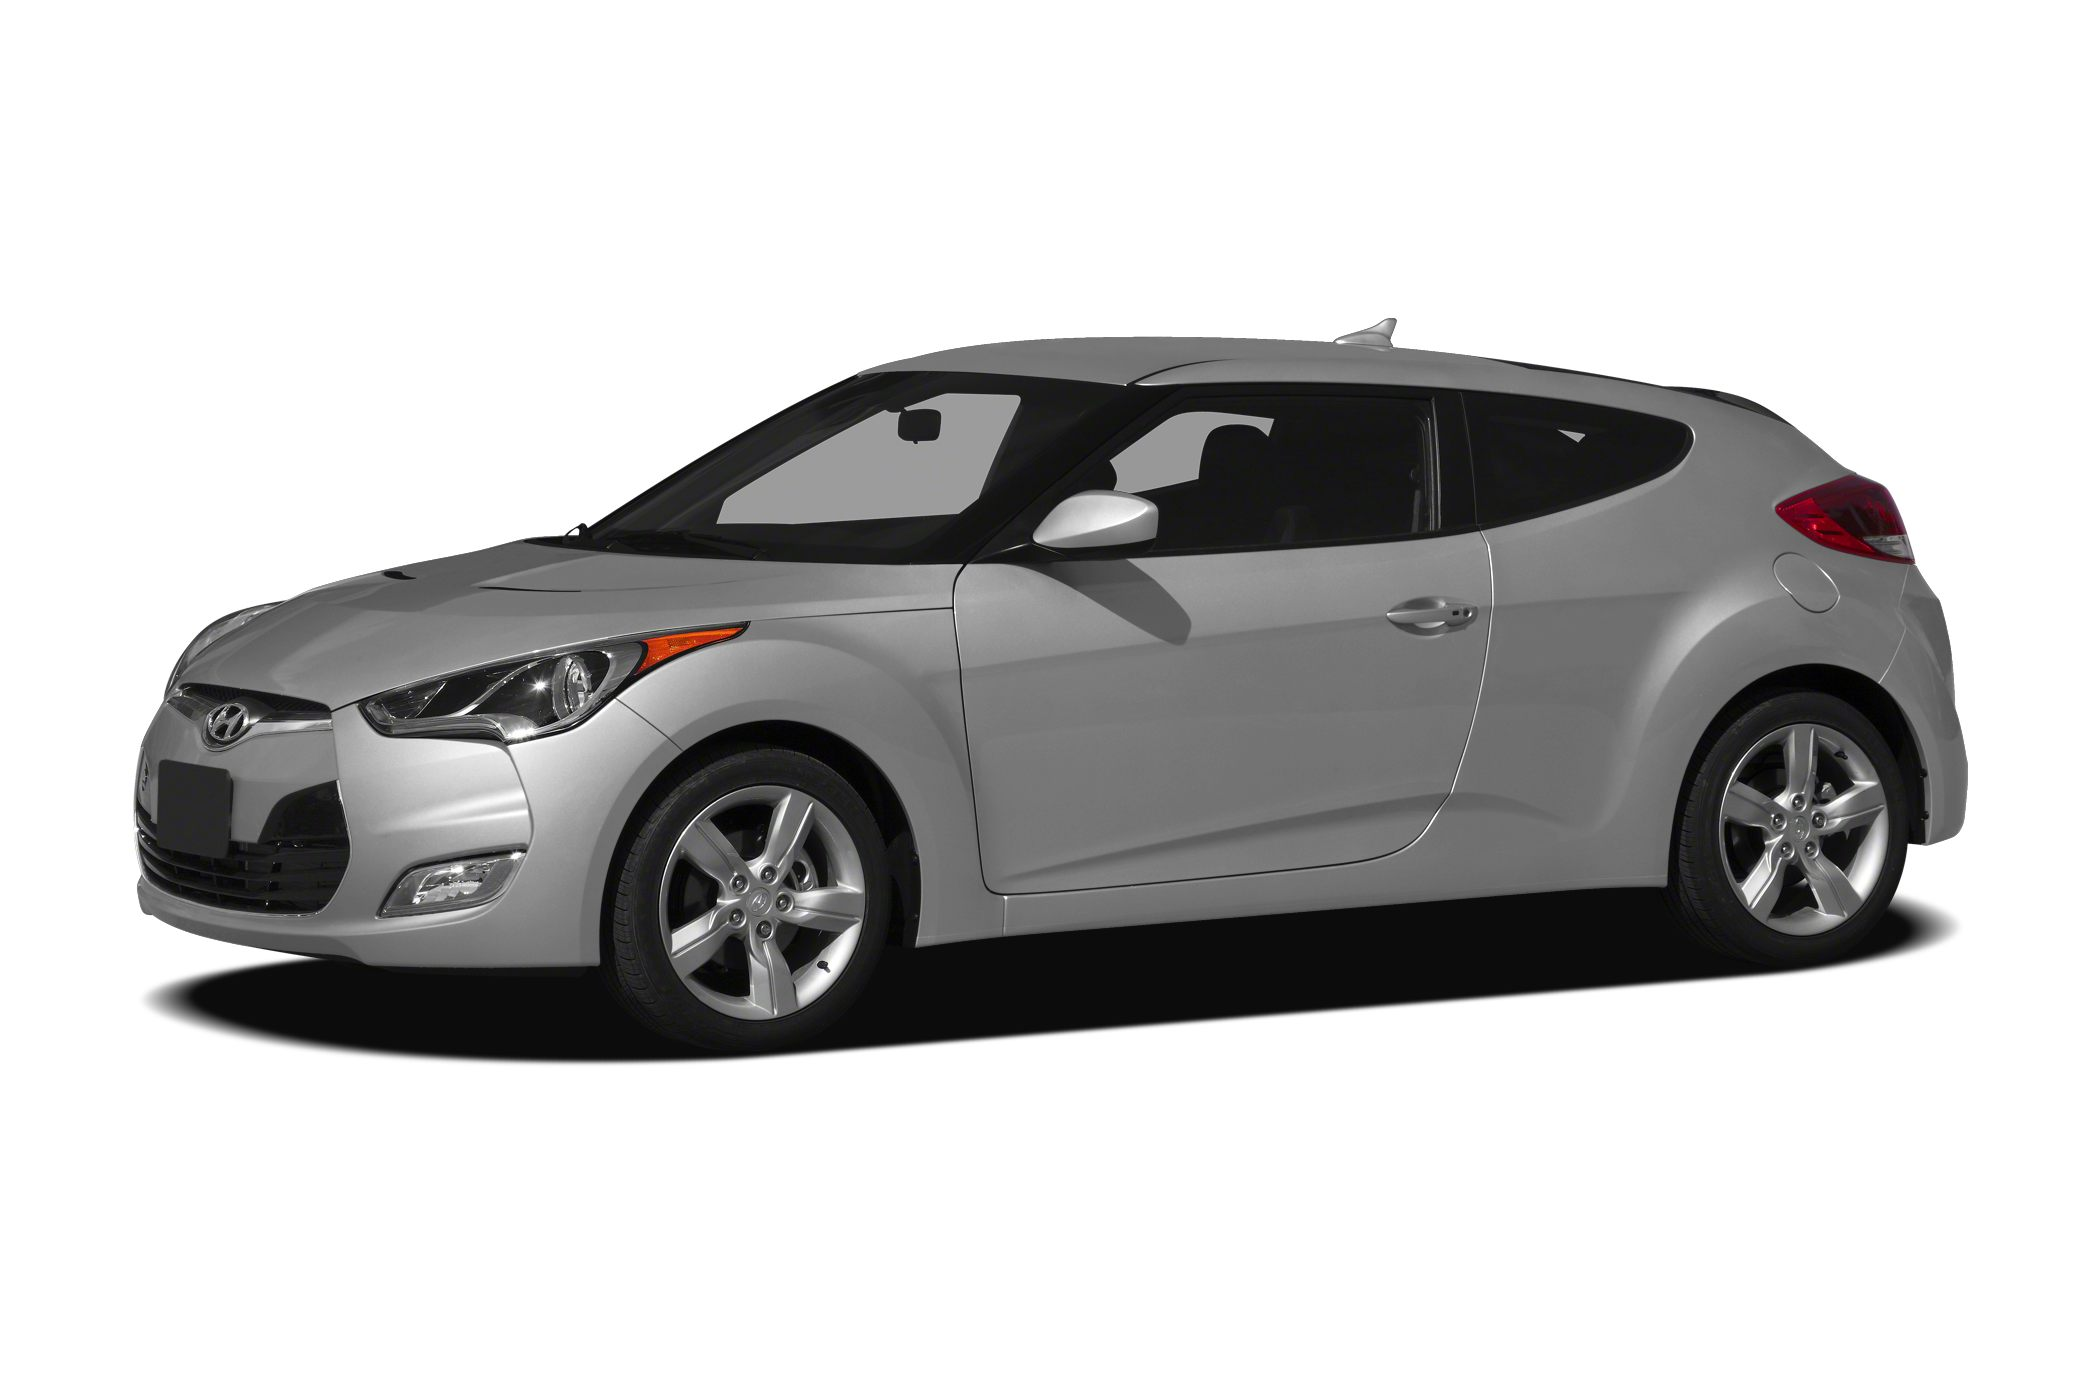 2012 Hyundai Veloster Base Hatchback for sale in Gastonia for $16,844 with 20,671 miles.